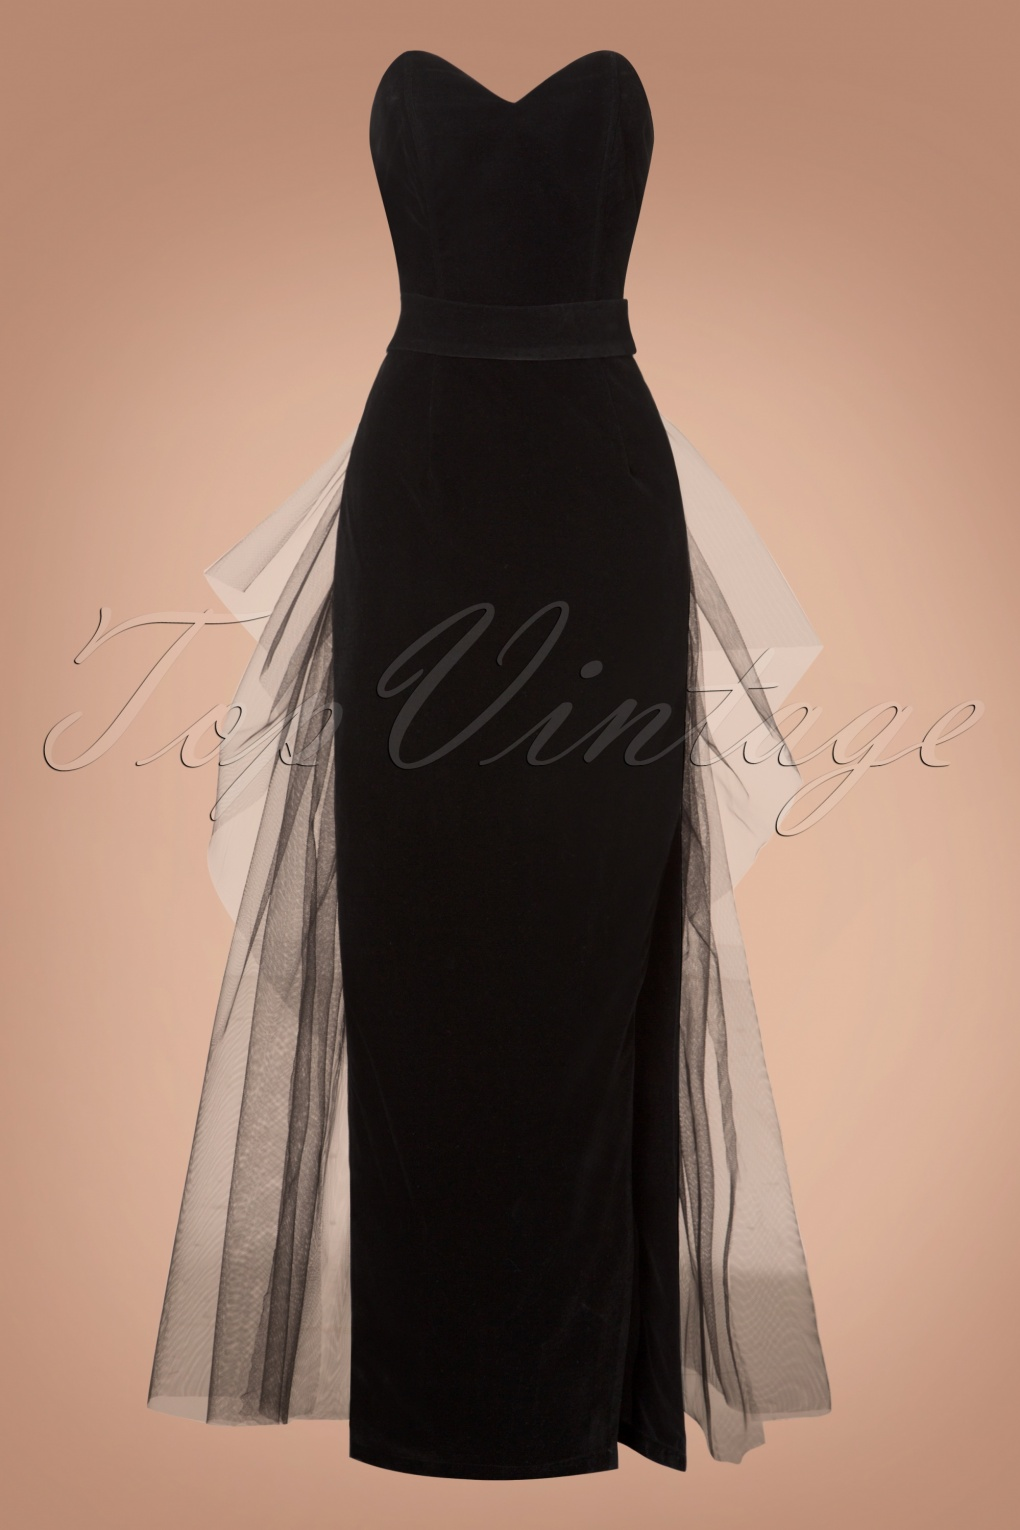 1950s Prom Dresses & Party Dresses 50s Doris Velvet Maxi Dress in Black £83.73 AT vintagedancer.com